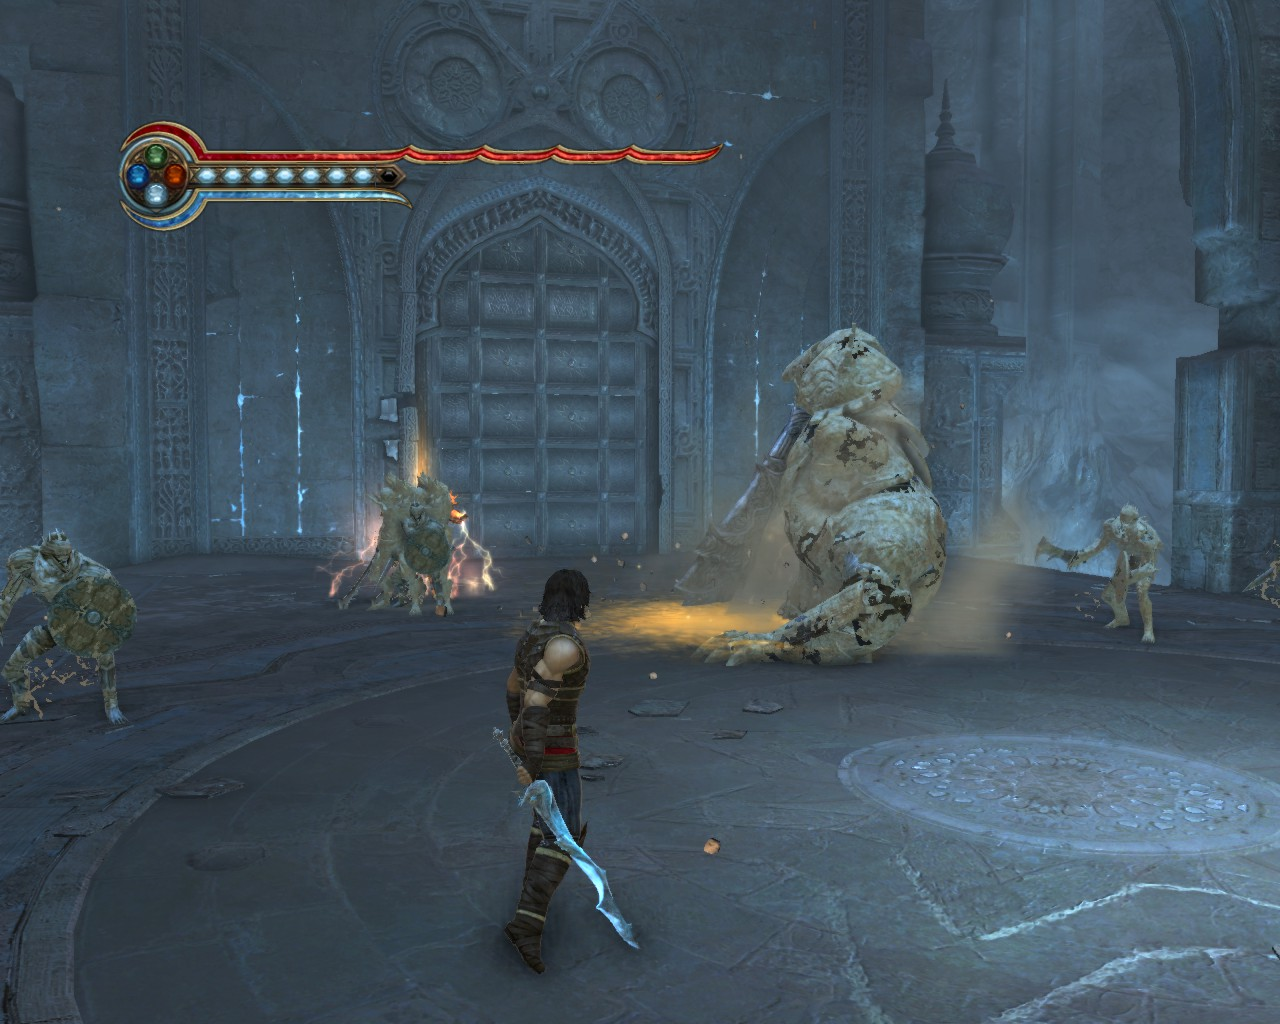 Prince of Persia 2014-06-04 19-52-52-22.jpg - Prince of Persia: The Forgotten Sands